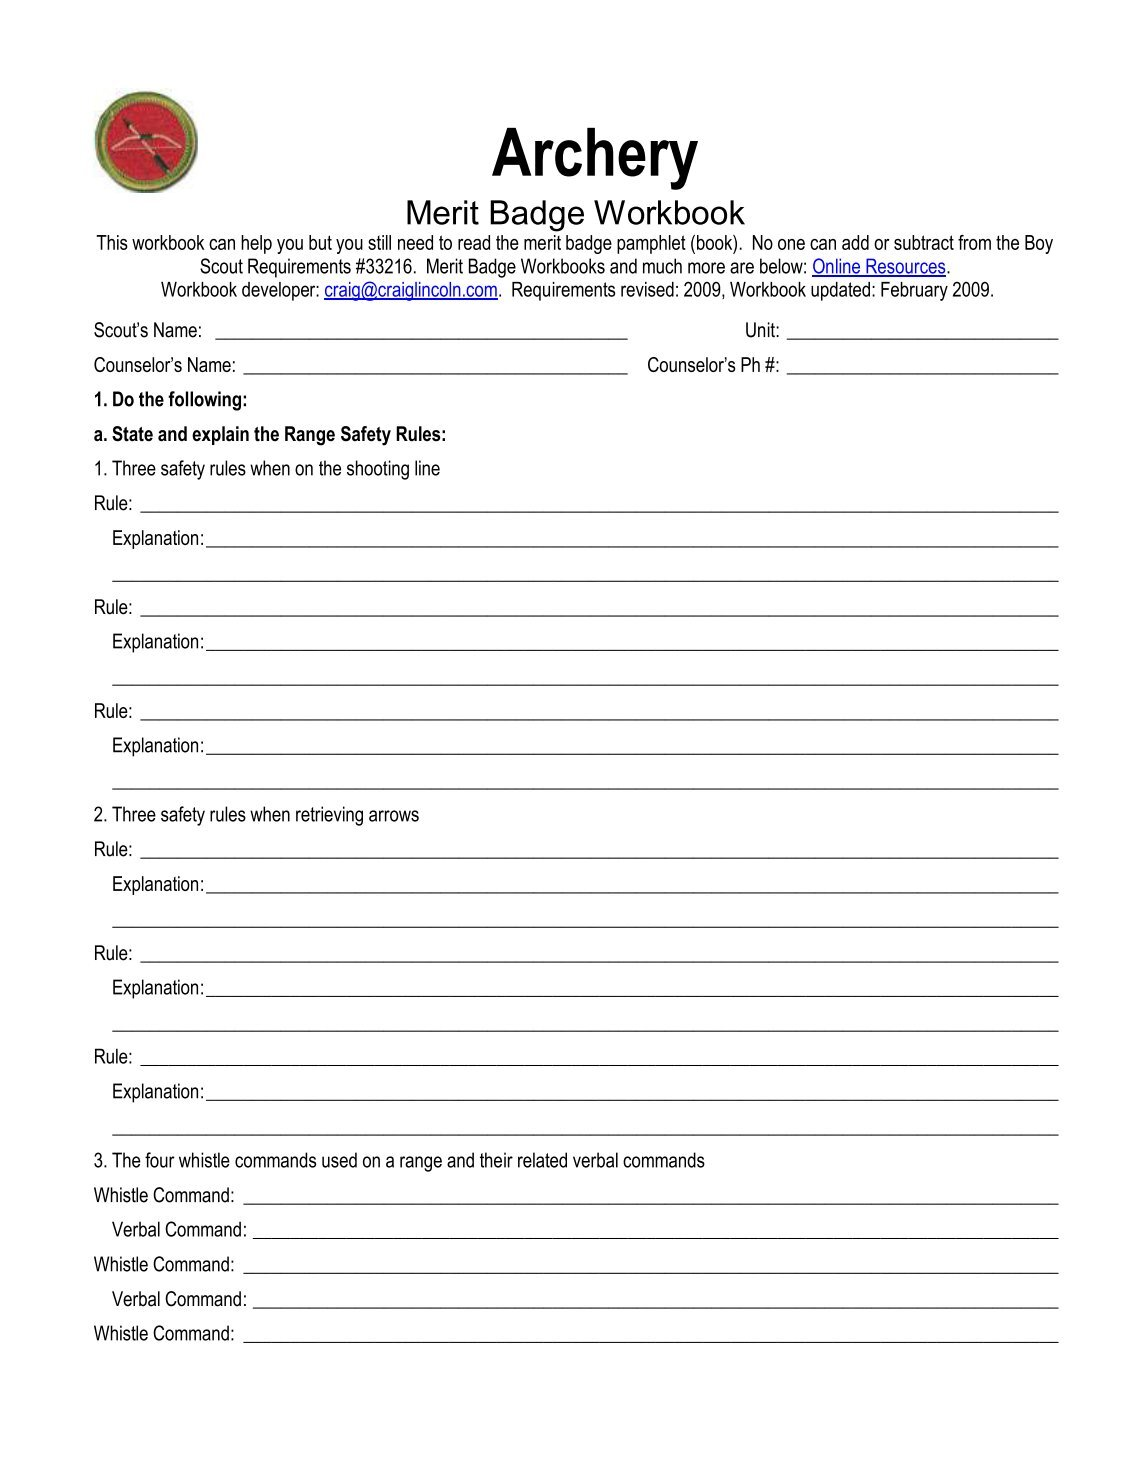 worksheet. Lifesaving Merit Badge Worksheet. Grass Fedjp Worksheet ...